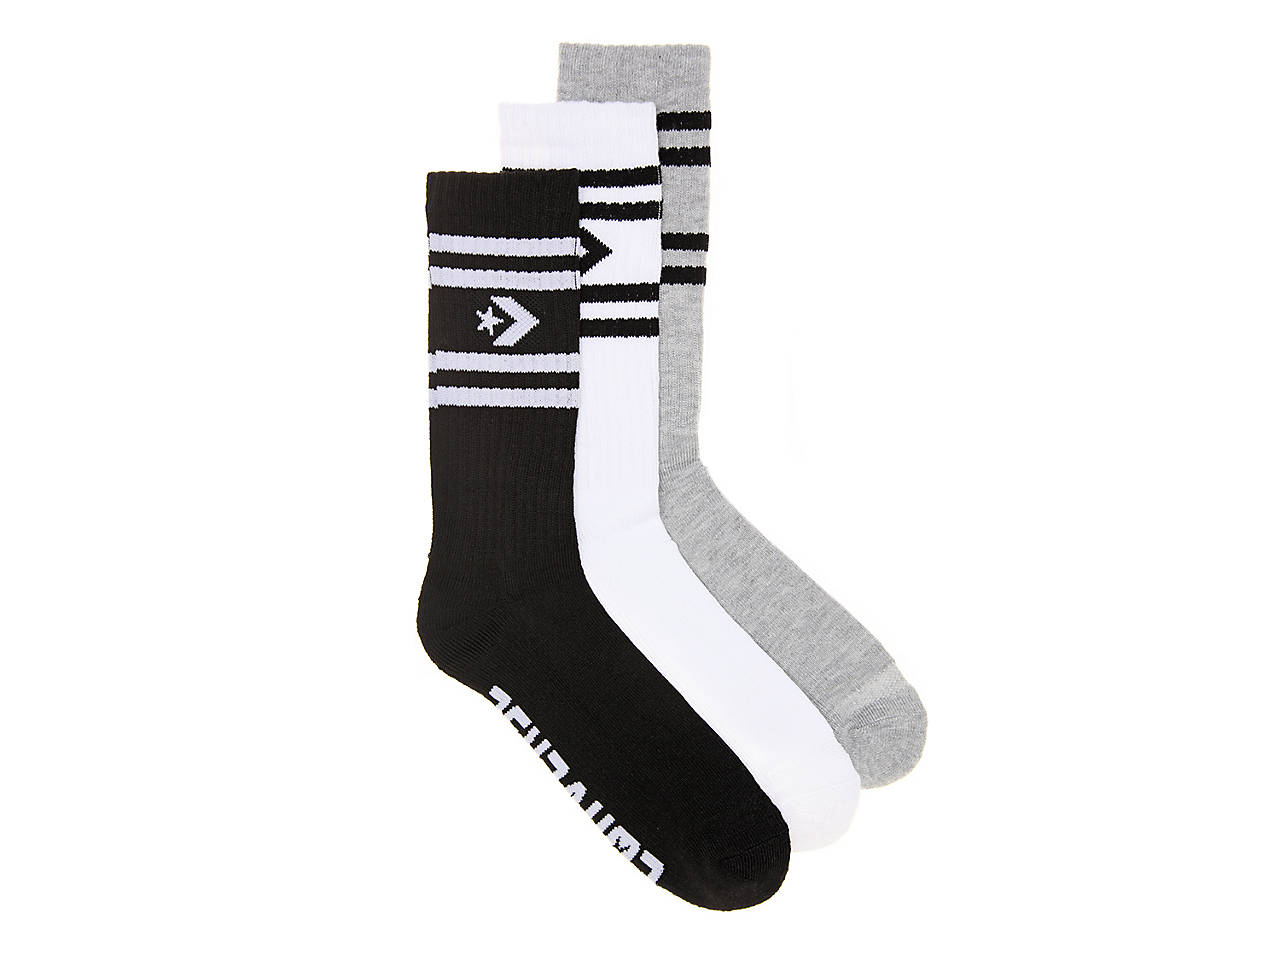 c52d5a5827b51 Half Cushion Men's Crew Socks - 3 Pack